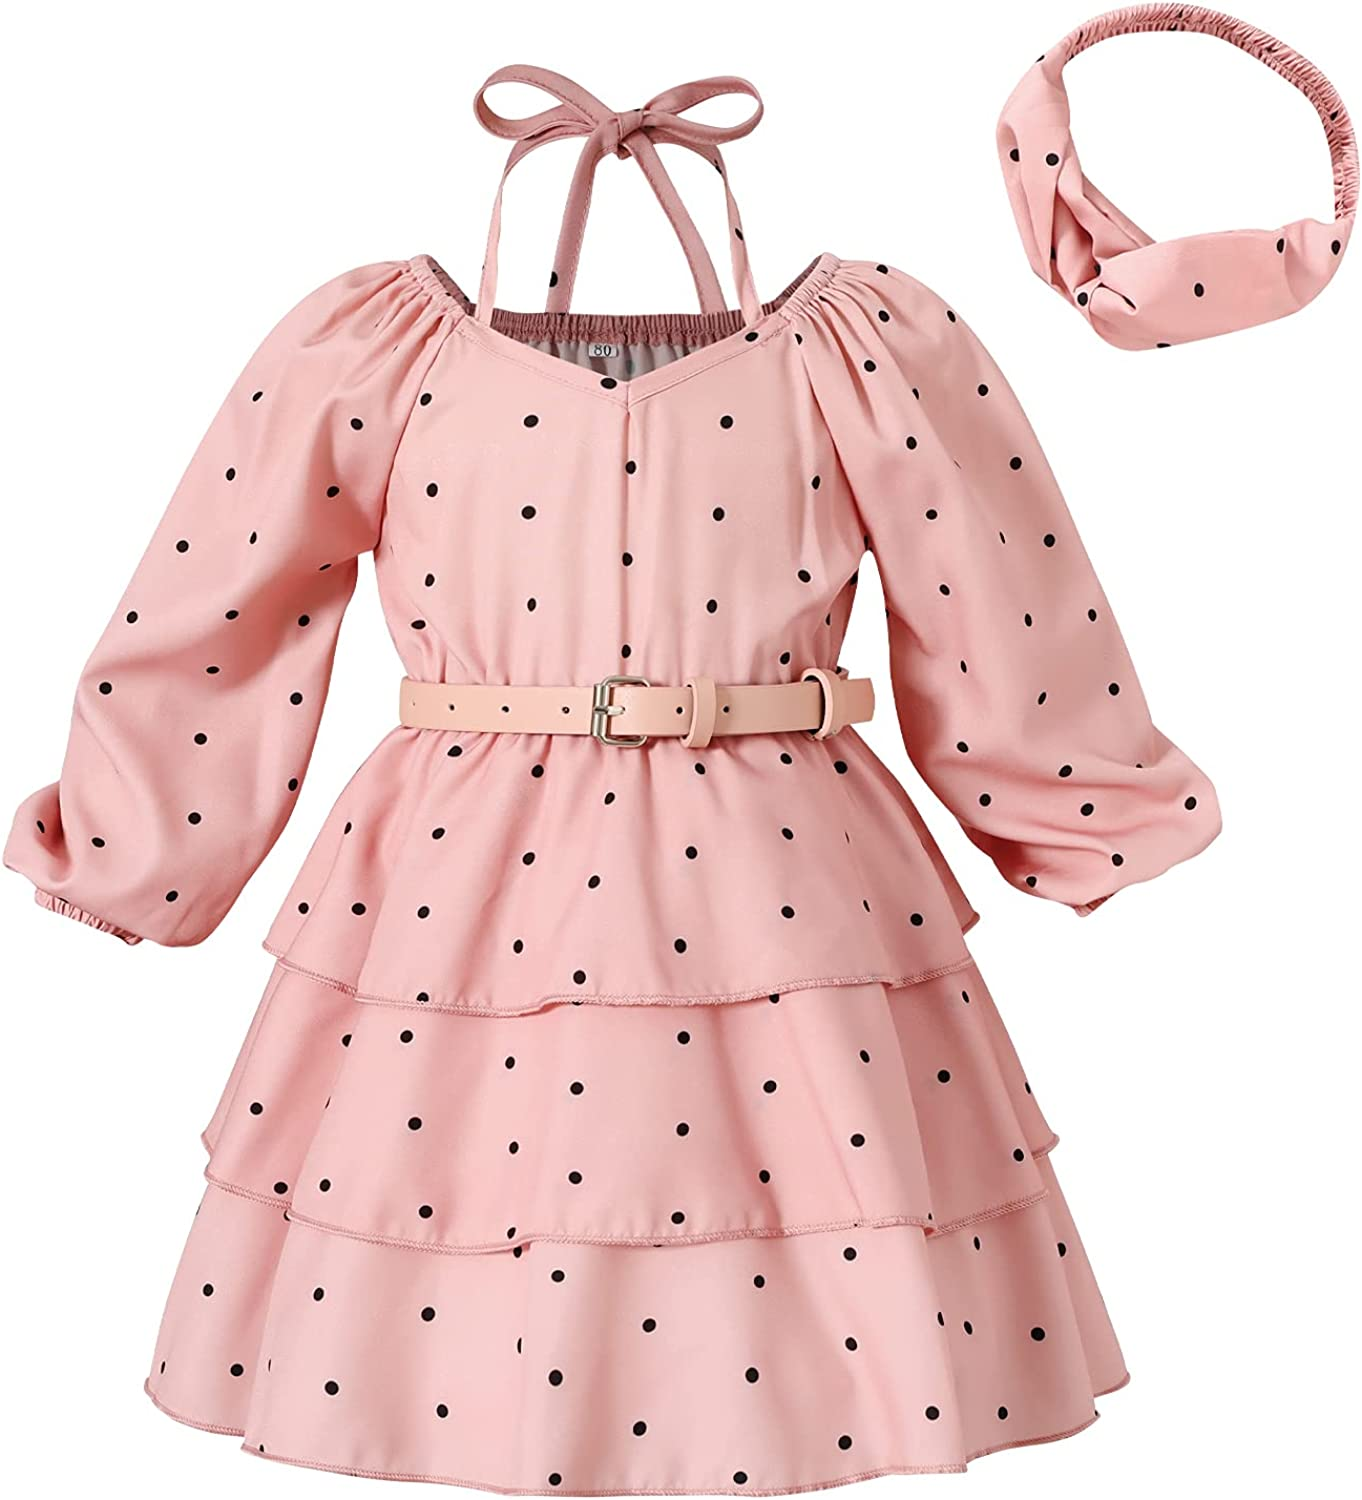 Toddler Girls Clothes Dress Halter Dots 3-Layer Pleated Party Dress Chiffon A-line Dress with Belt Headband Summer Outfits